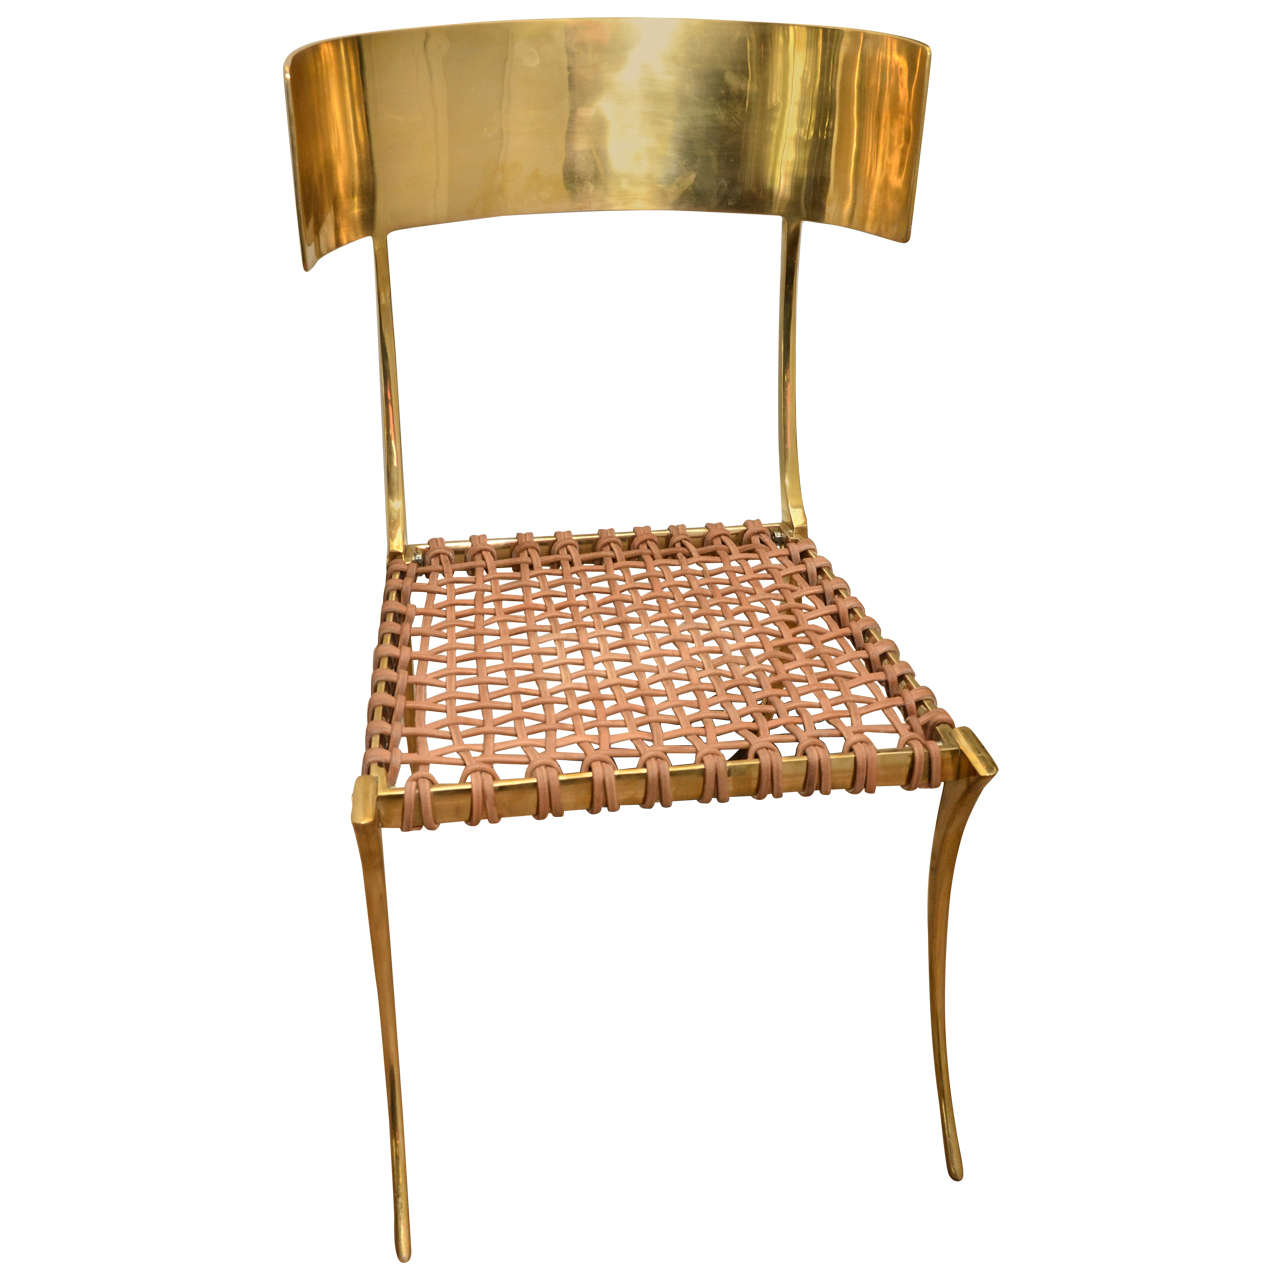 contemporary klismos brass chair with leather straps for sale at 1stdibs rh 1stdibs com brass chair lamp brass chair lamp